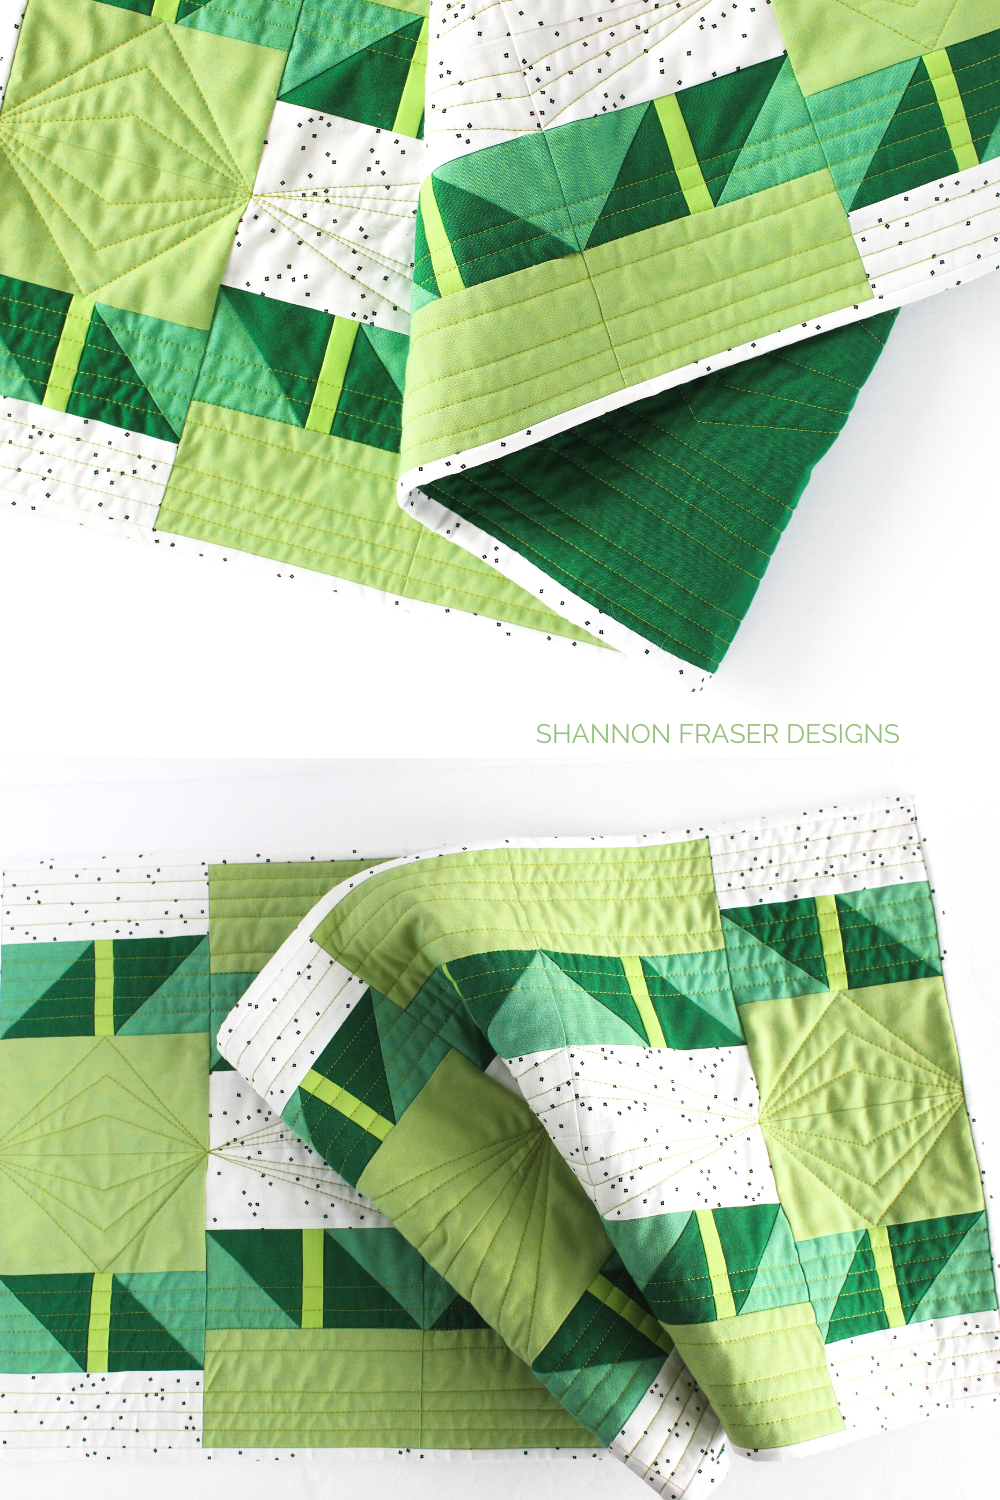 Shattered Star quilted table runner in green ombre | 7 reasons why quilted table runners make a great gift | Shannon Fraser Designs #tablelinens